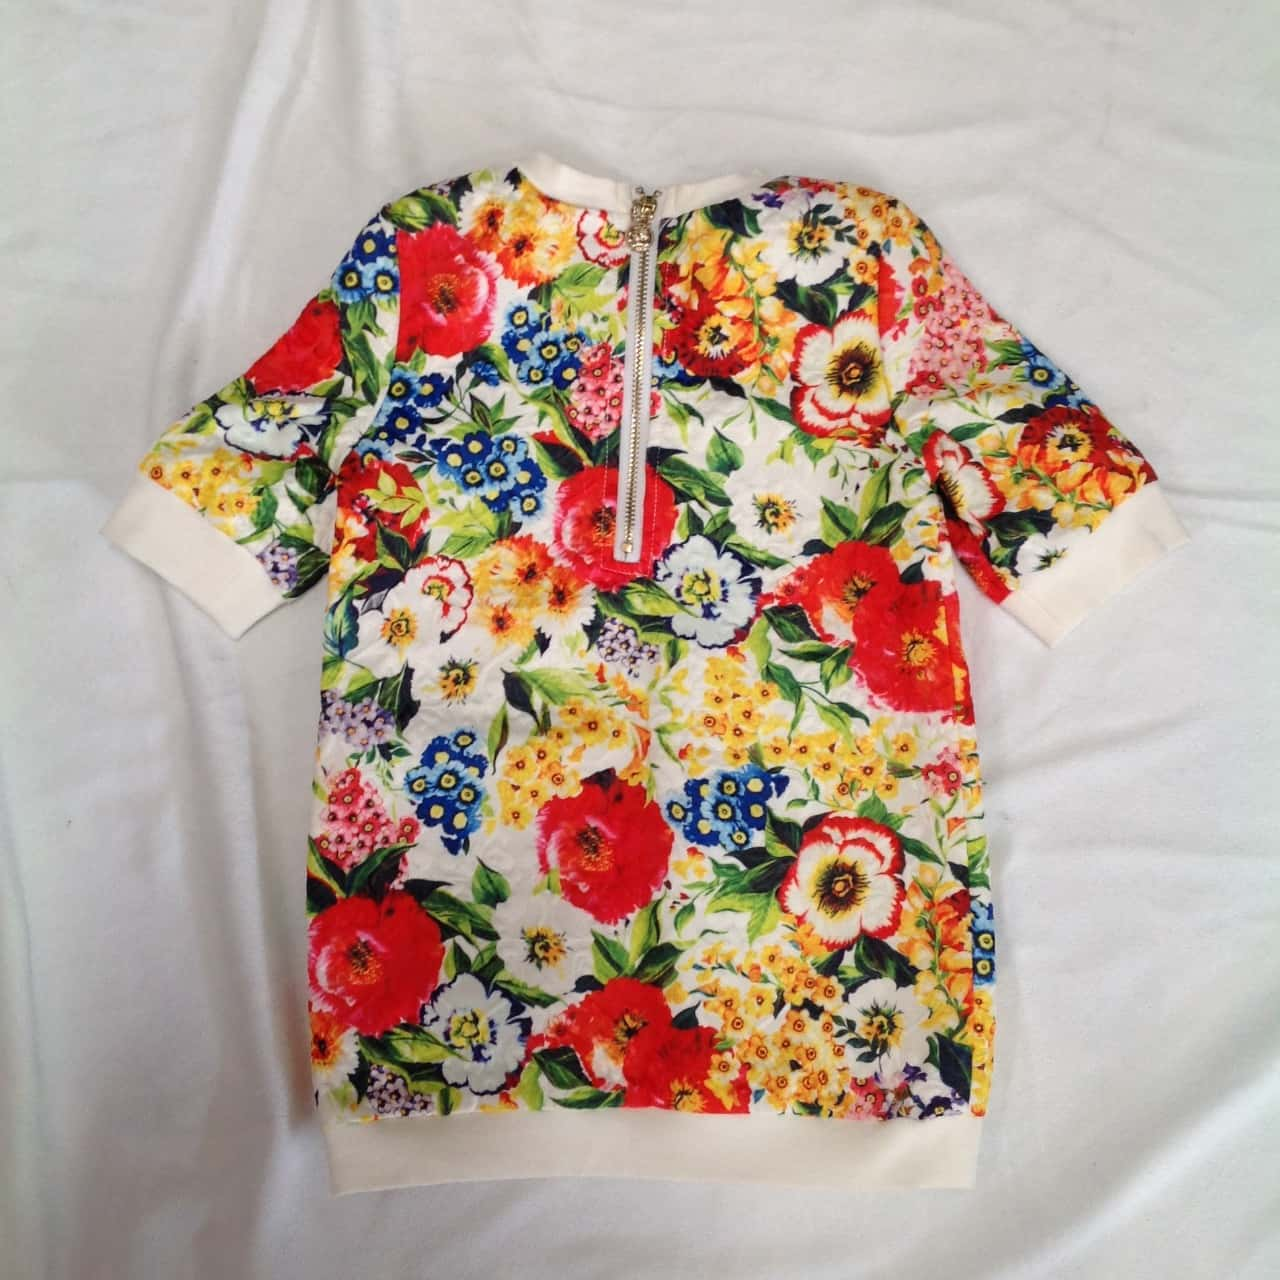 Dolce & Gabbana Kids Dress Floral/Multicoloured age 3-5